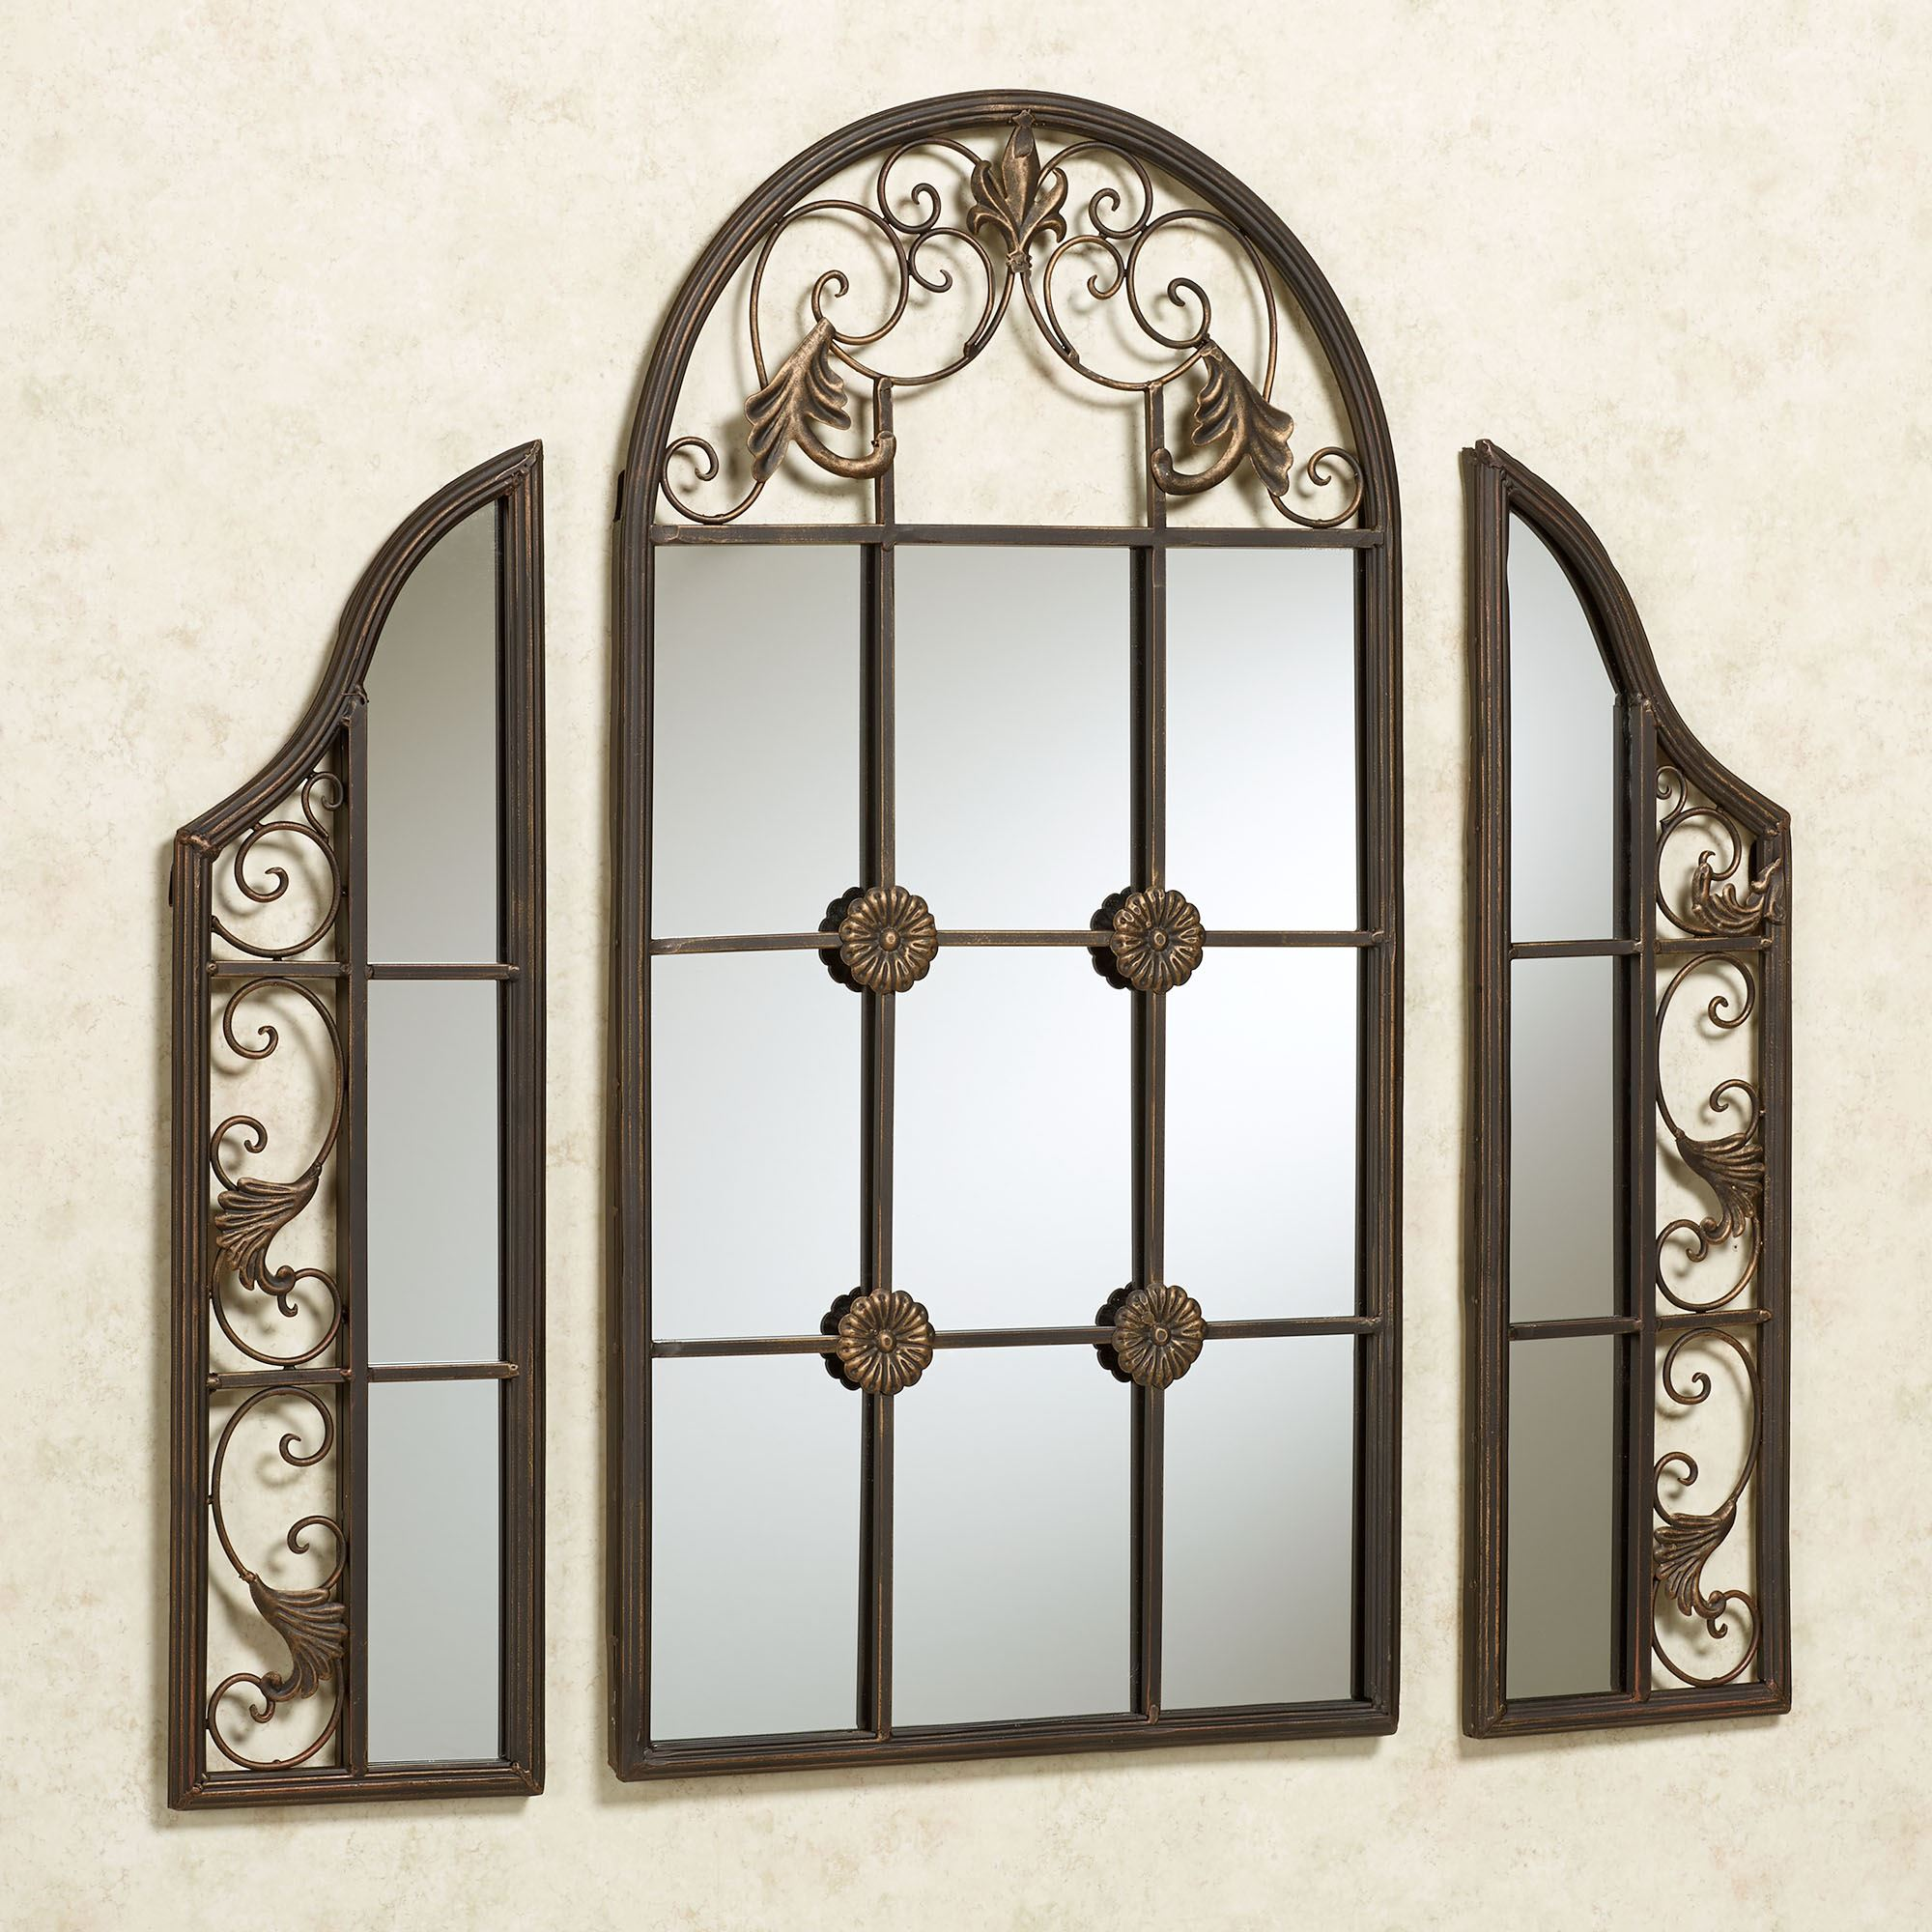 Hera Windowpane Style Wall Mirror Set